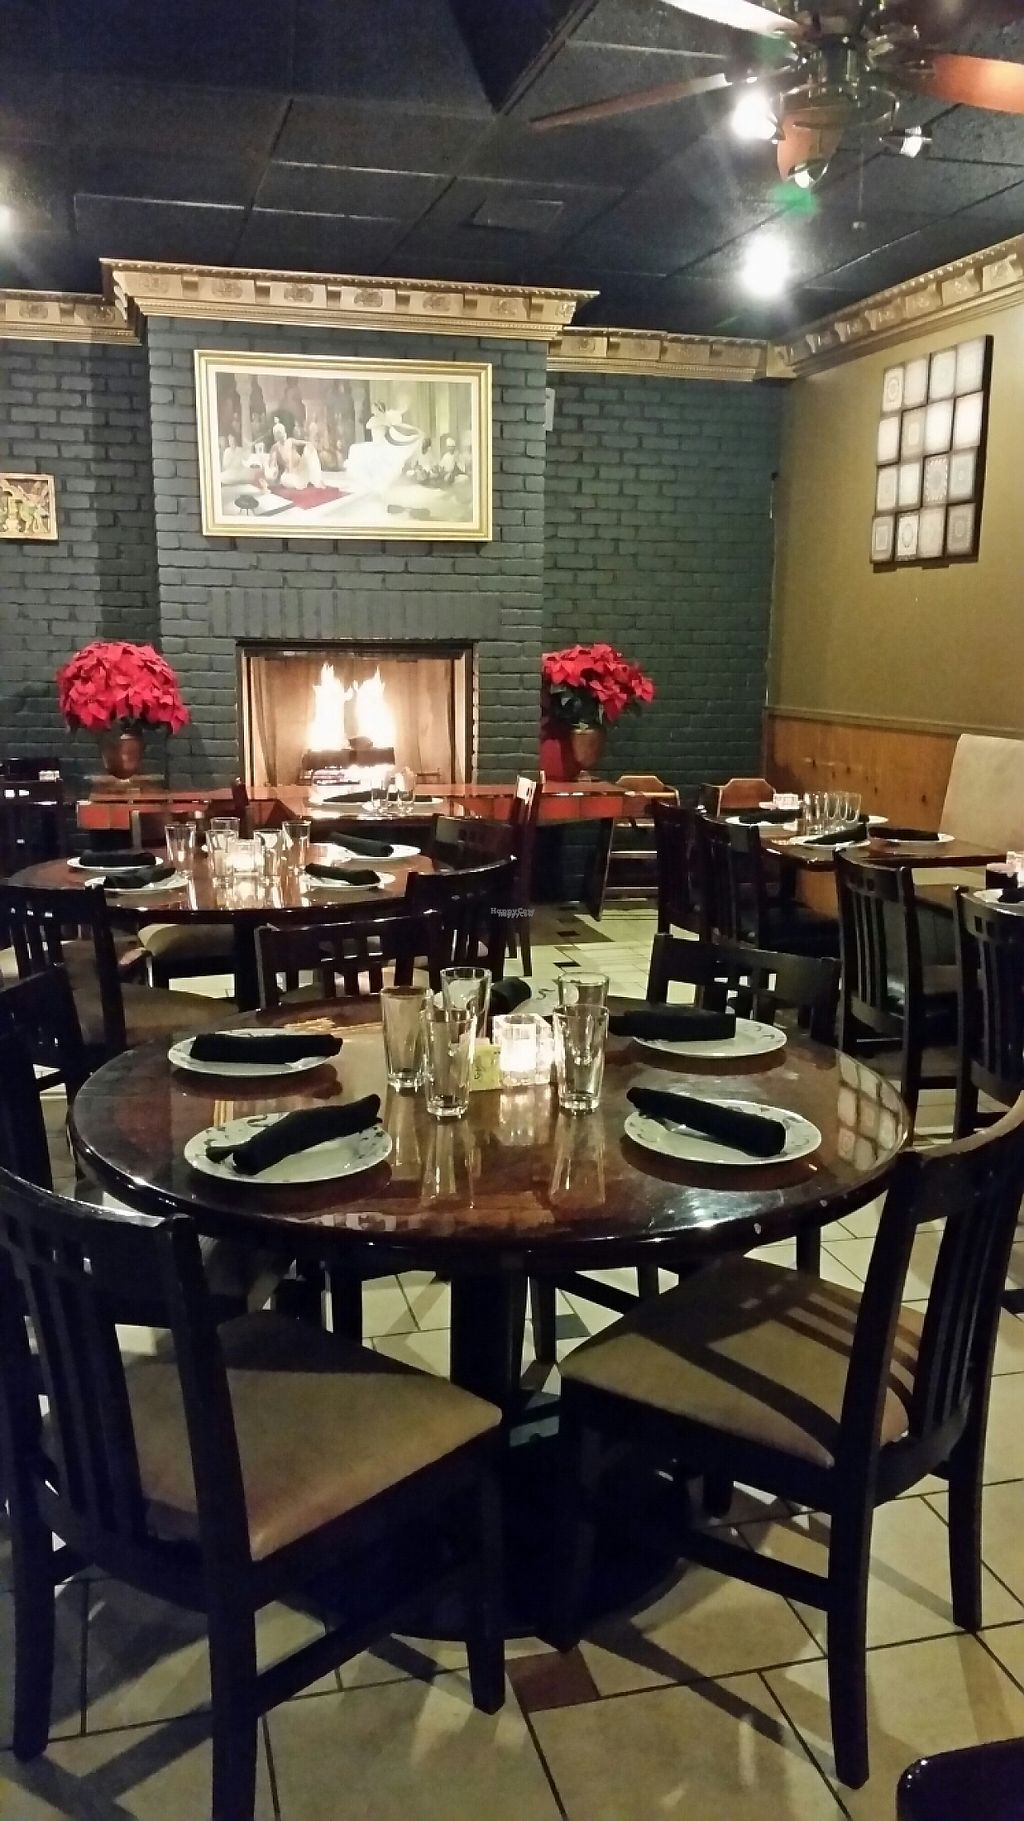 """Photo of Kathmandu Kitchen  by <a href=""""/members/profile/True%20North"""">True North</a> <br/>main dining room with cozy fire <br/> January 28, 2017  - <a href='/contact/abuse/image/80848/218071'>Report</a>"""